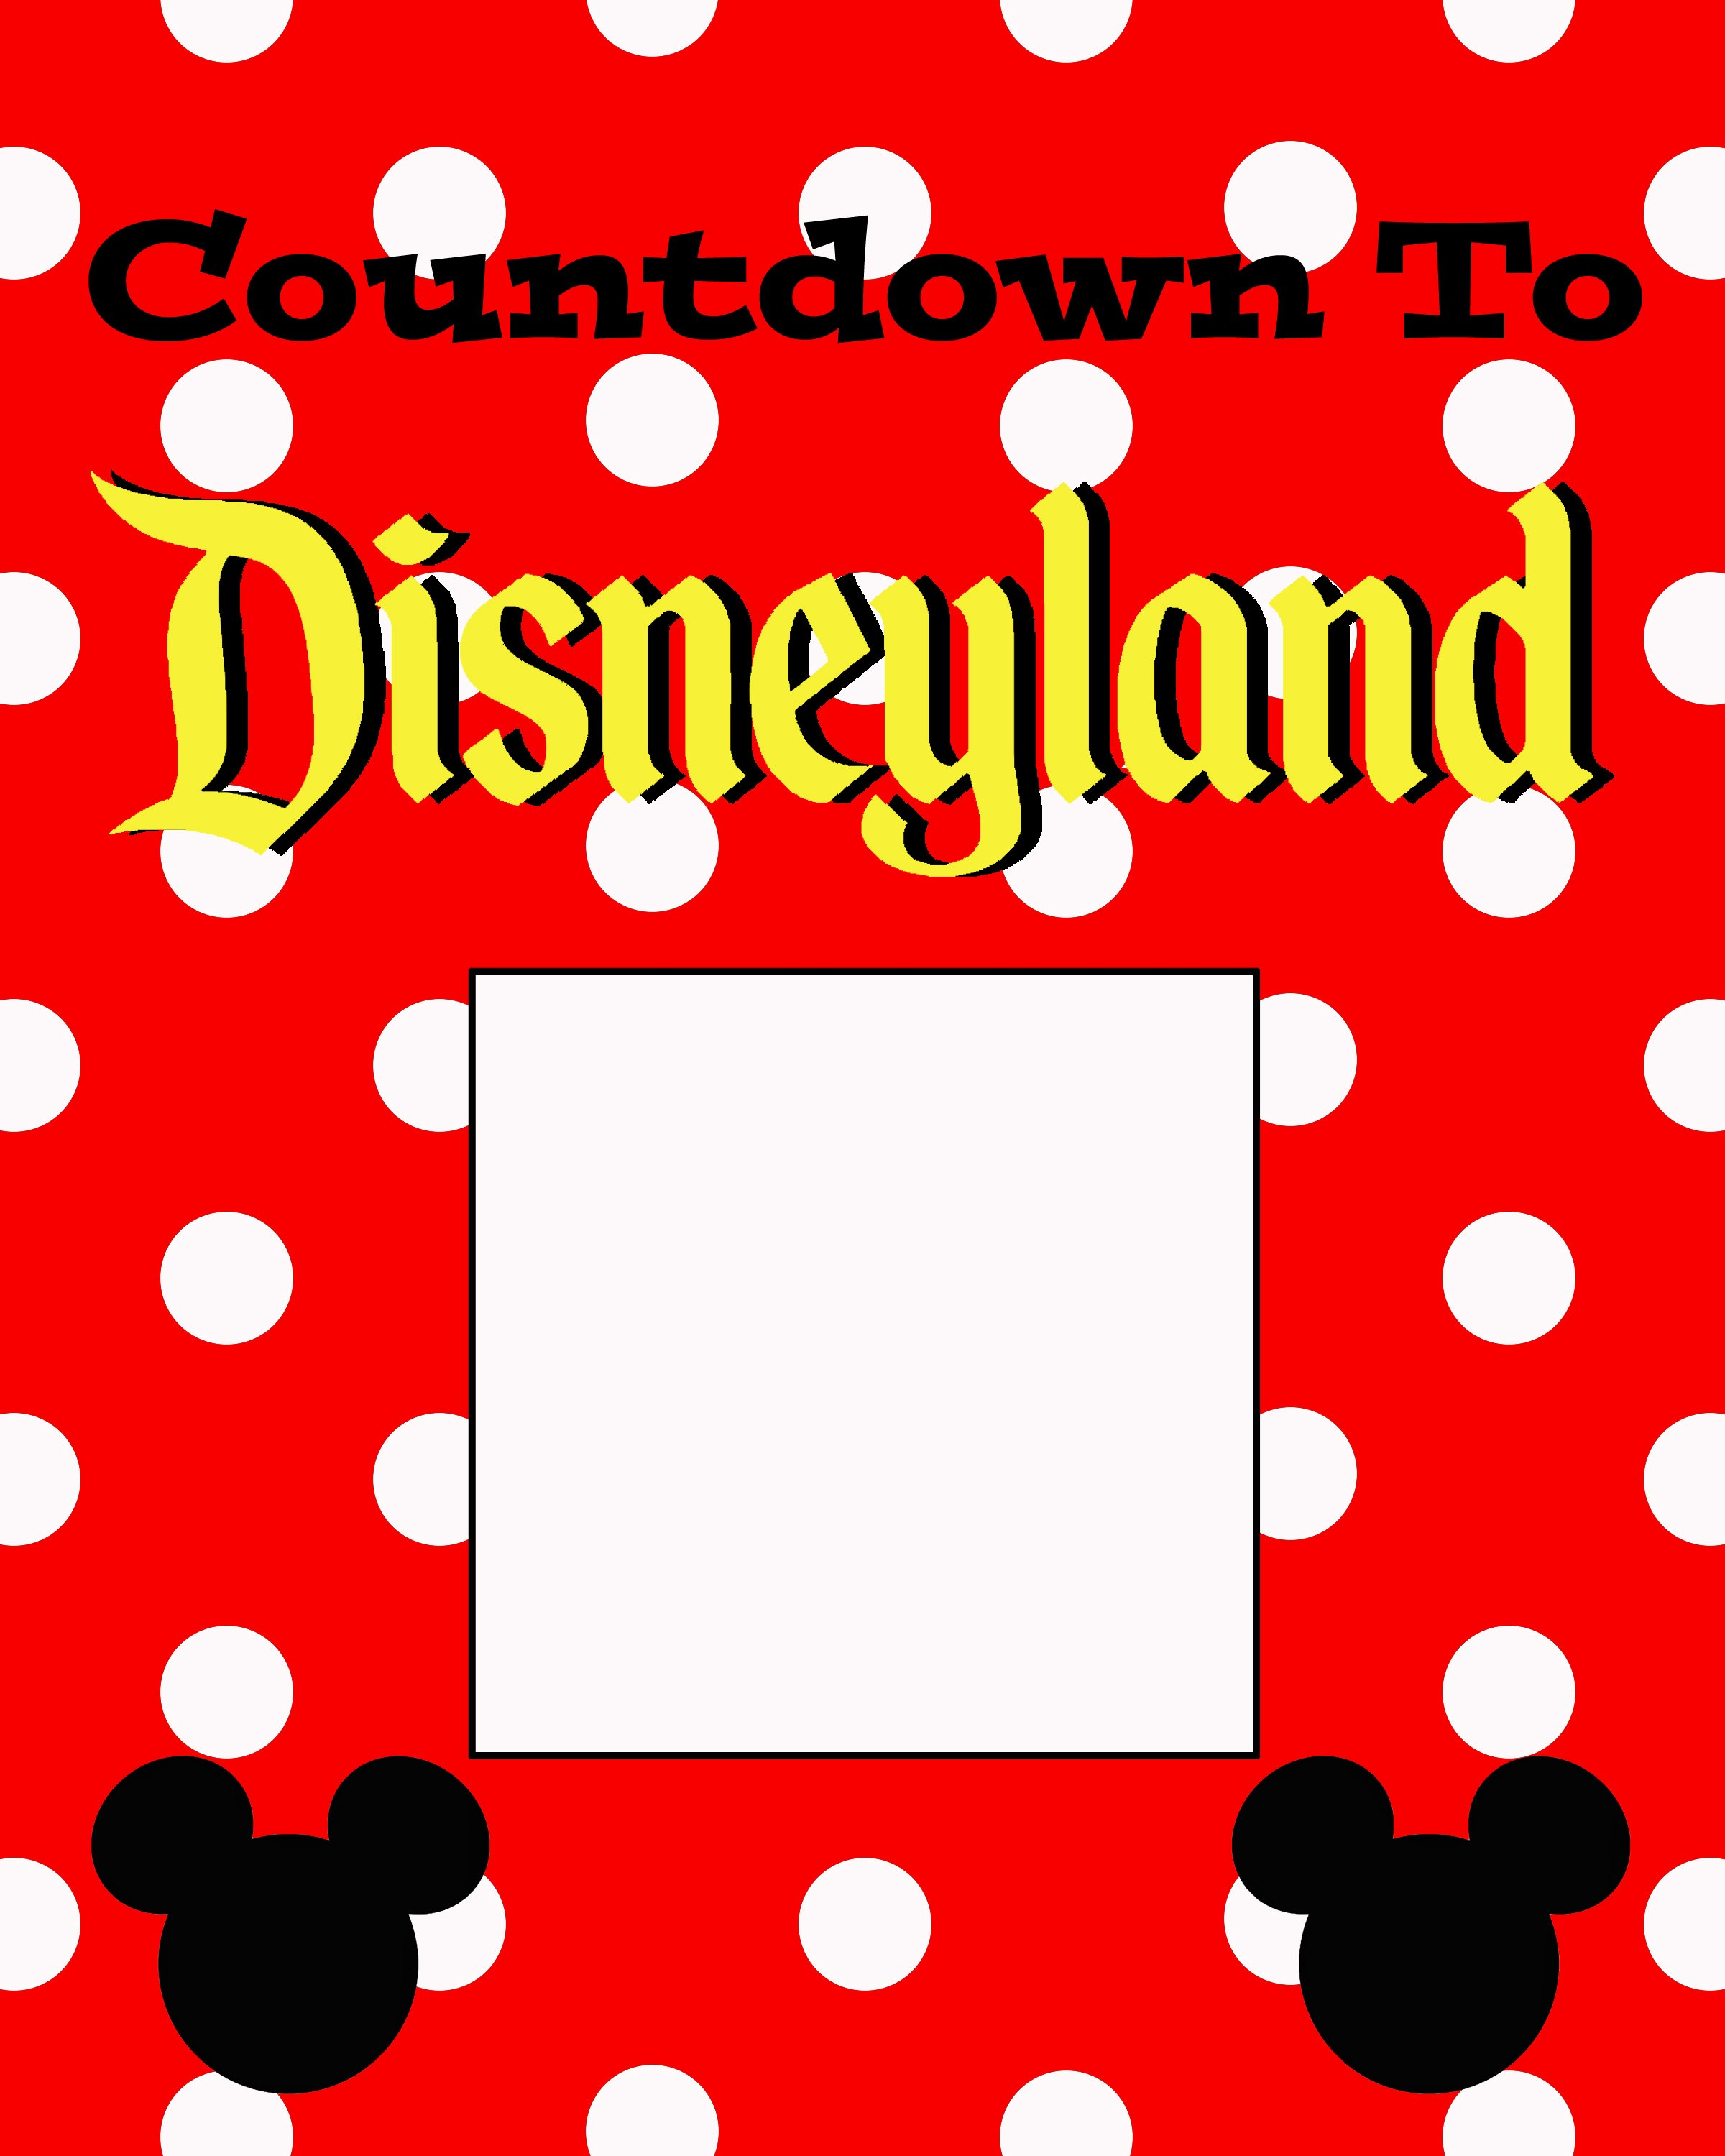 photo regarding You're Going to Disneyland Printable named Cost-free Countdown in the direction of Disneyland Printable - The Suburban Mother